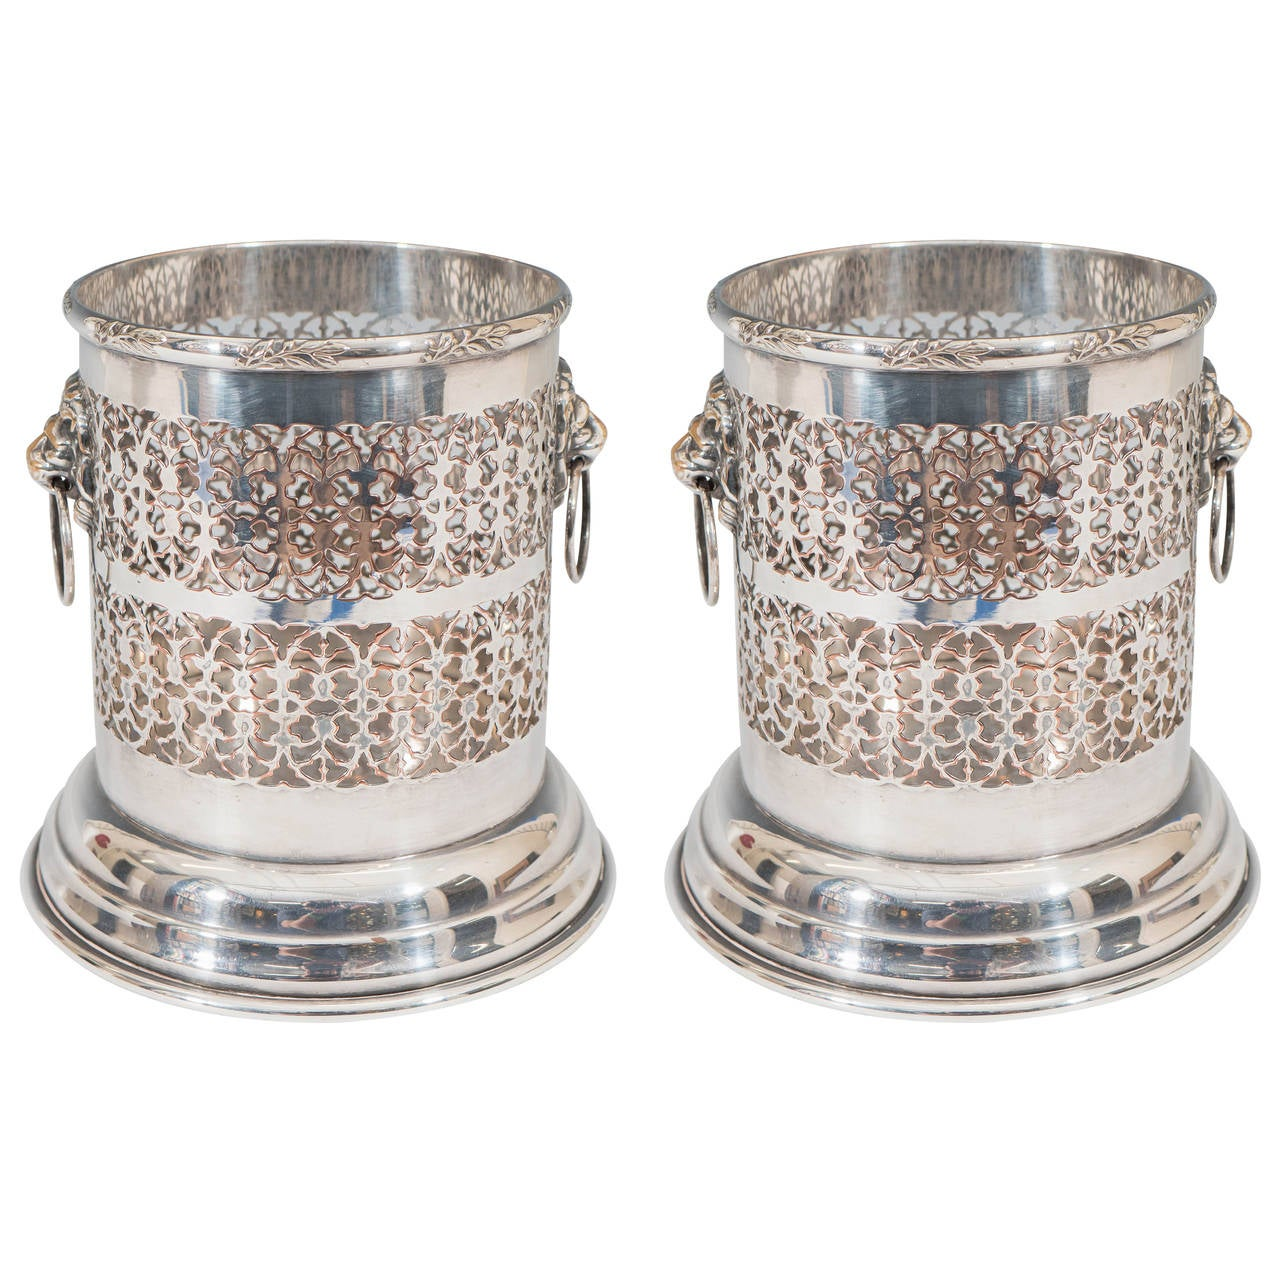 A Vintage Pair of Sheffield Silver Plate Wine Holders with Lion Head Detail For Sale  sc 1 st  1stDibs & A Vintage Pair of Sheffield Silver Plate Wine Holders with Lion Head Detail